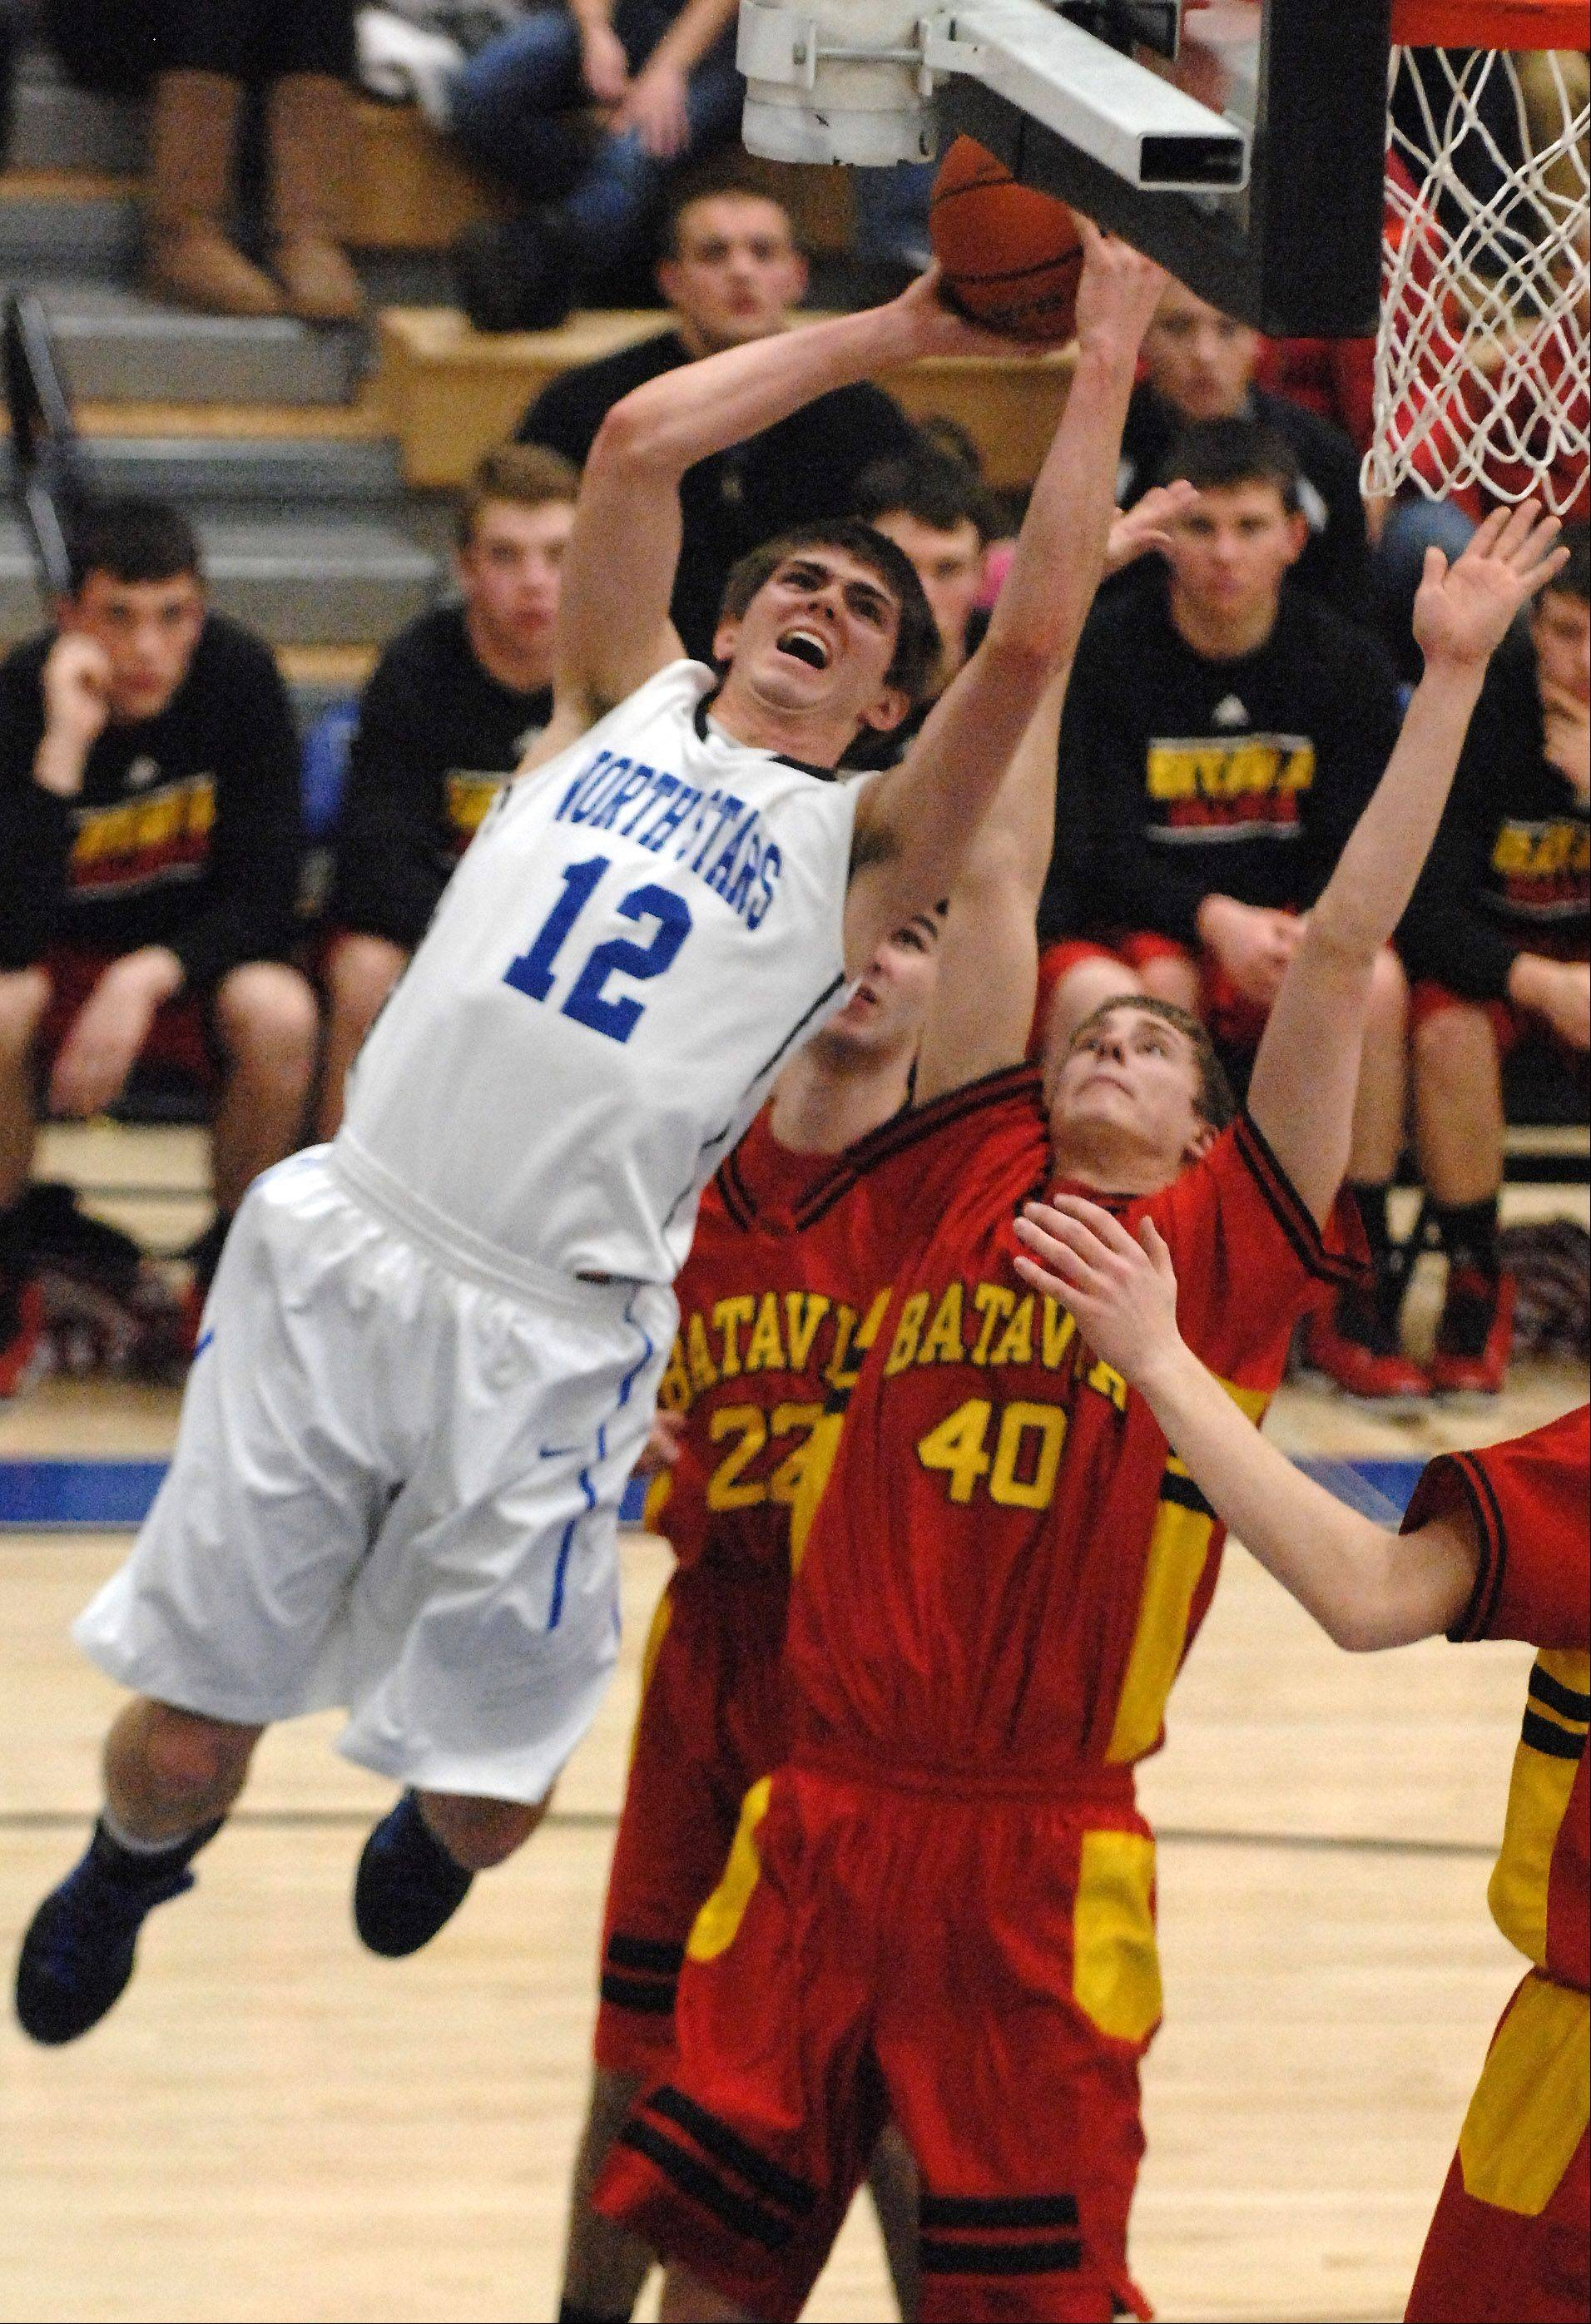 St. Charles North tips Batavia in OT